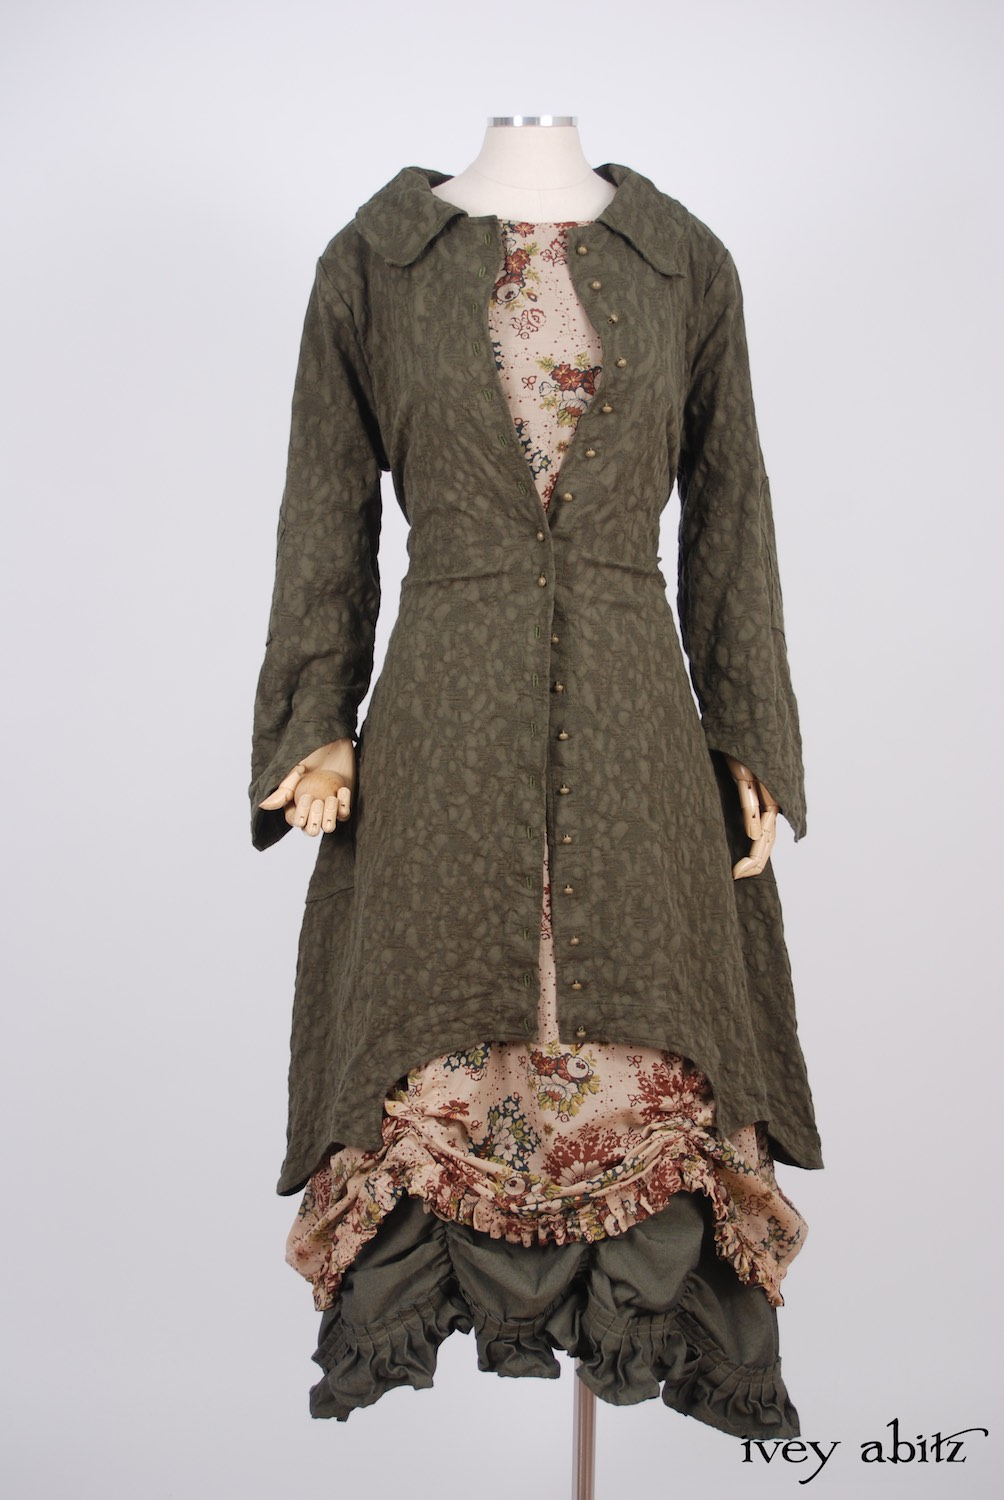 Ivey Abitz - Chittister Duster Coat in Morning Meadow Hemstitch Jacquard  - Montmorency Frock in Blushed Meadow Floral Cotton Voile, High Water Length - Edenshire Frock in Morning Meadow Yarn Dyed Cotton, Low Water Length